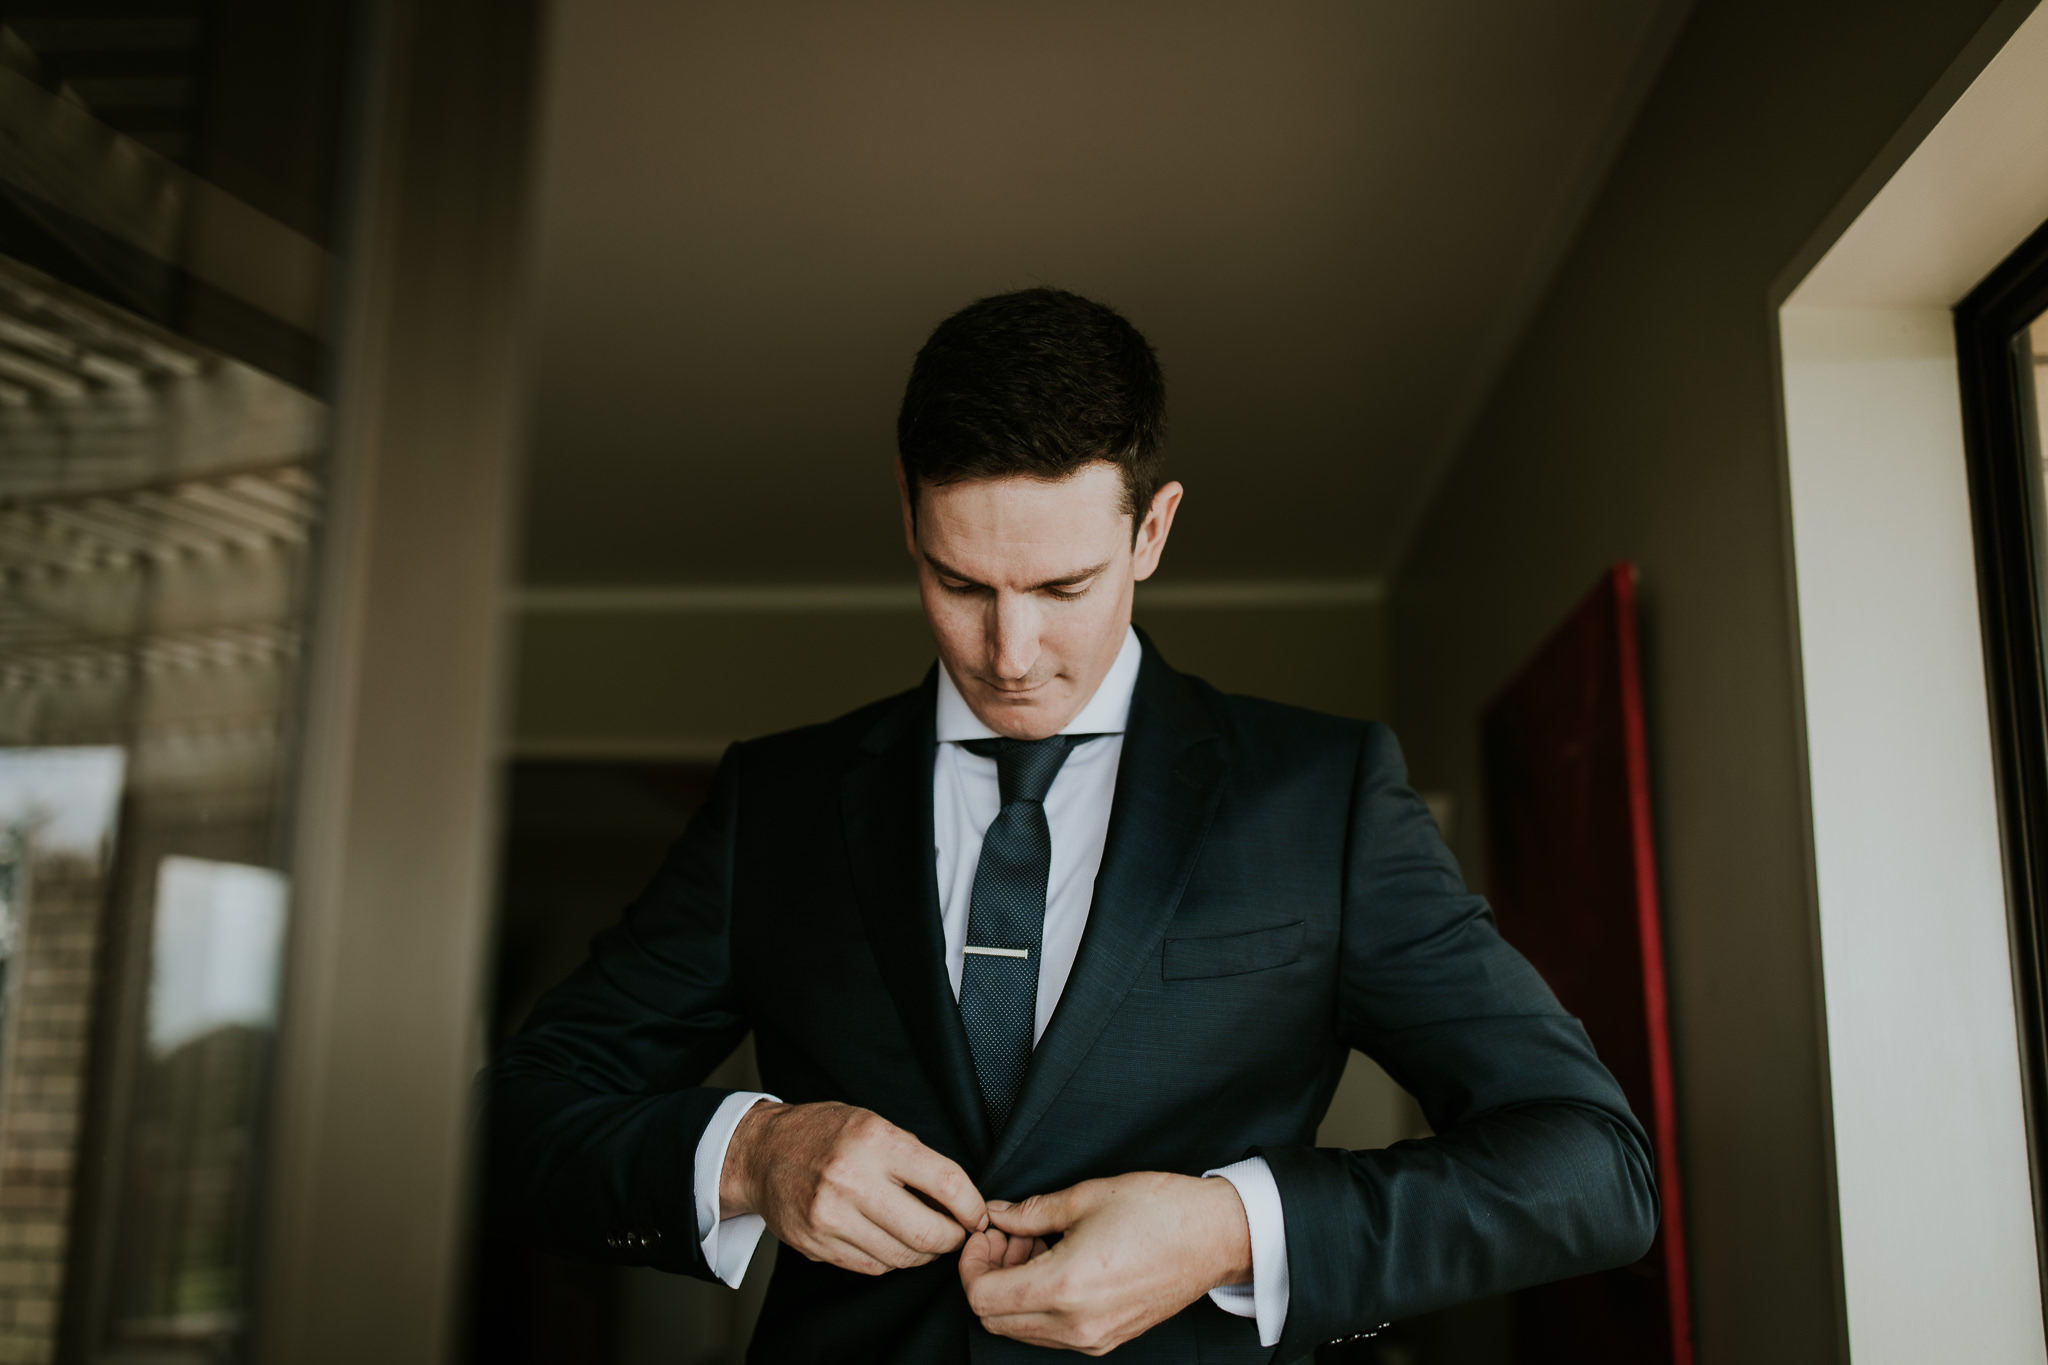 Groom doing up the last button on his suit before the wedding